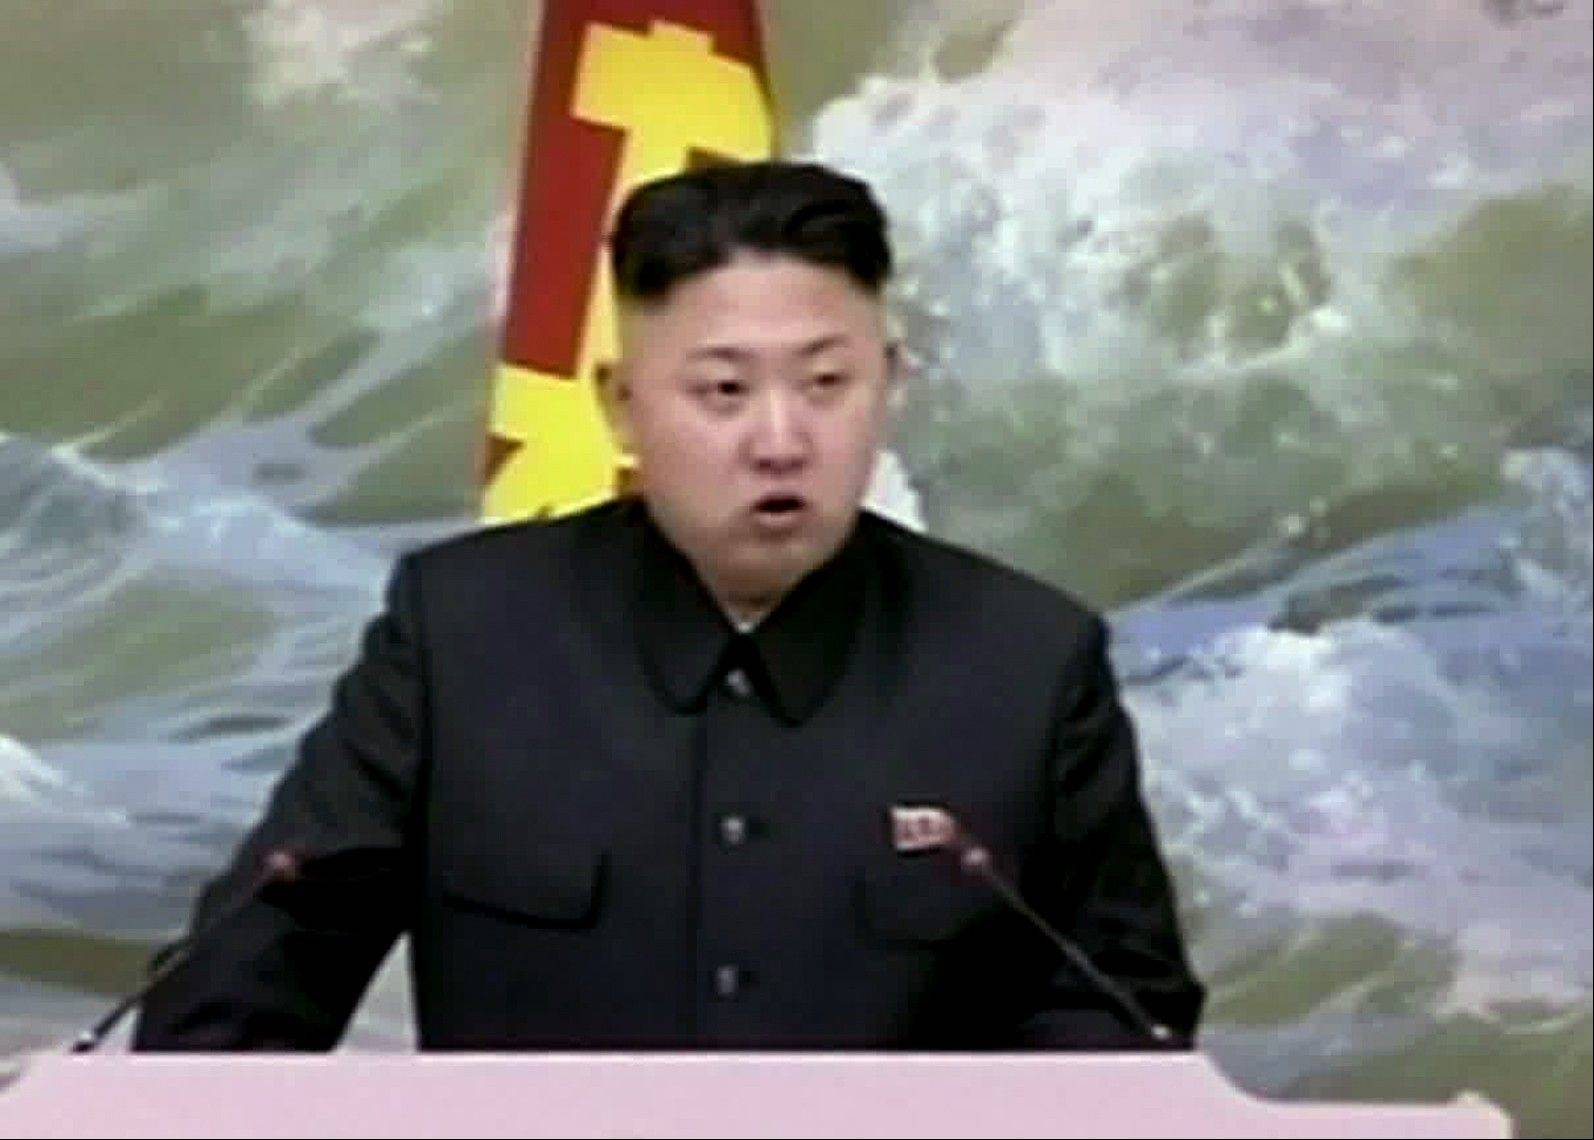 North Korean leader Kim Jong Un speaks at a banquet for rocket scientists in Pyongyang, North Korea, Dec. 21. North Korea's top governing body warned Thursday the regime will conduct its third nuclear test in defiance of U.N. punishment, and made clear that its long-range rockets are designed to carry not only satellites but also warheads aimed at striking the United States.